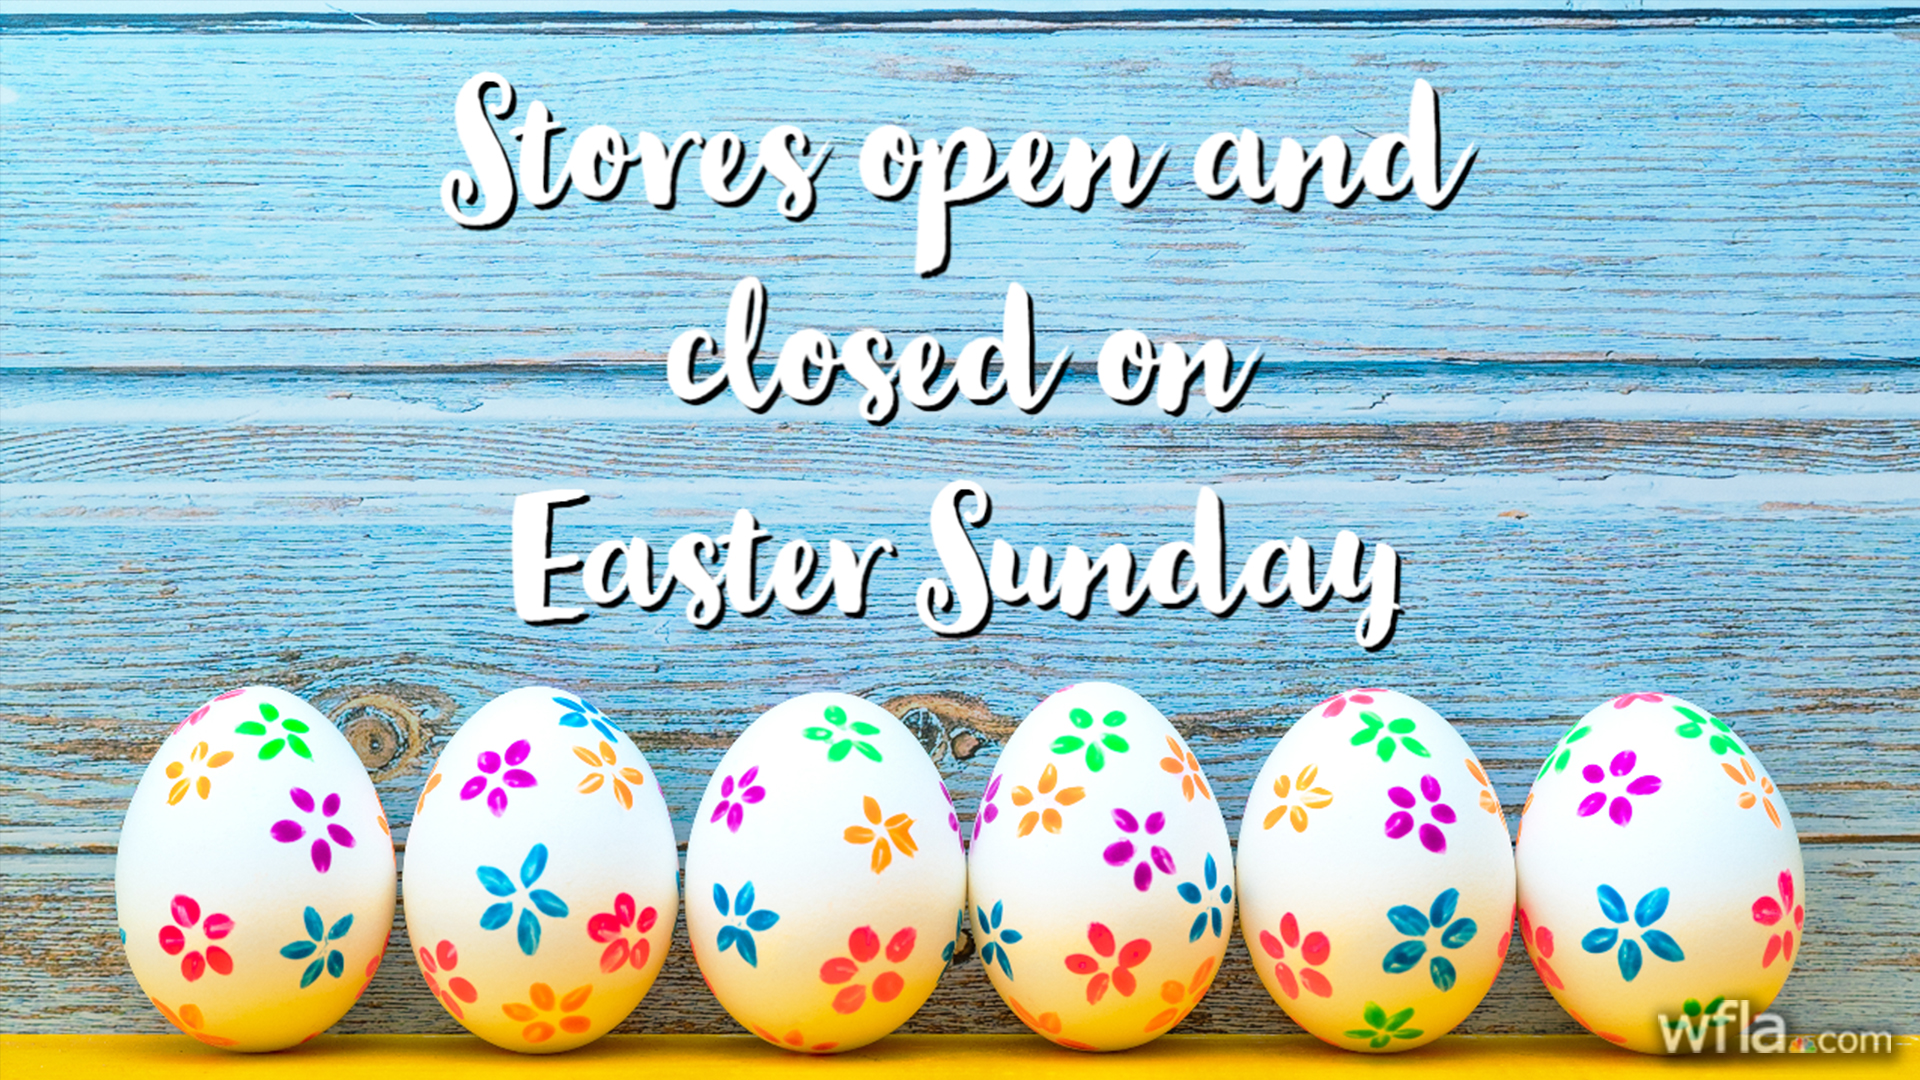 List Grocery Stores Retailers Open And Closed On Easter Sunday